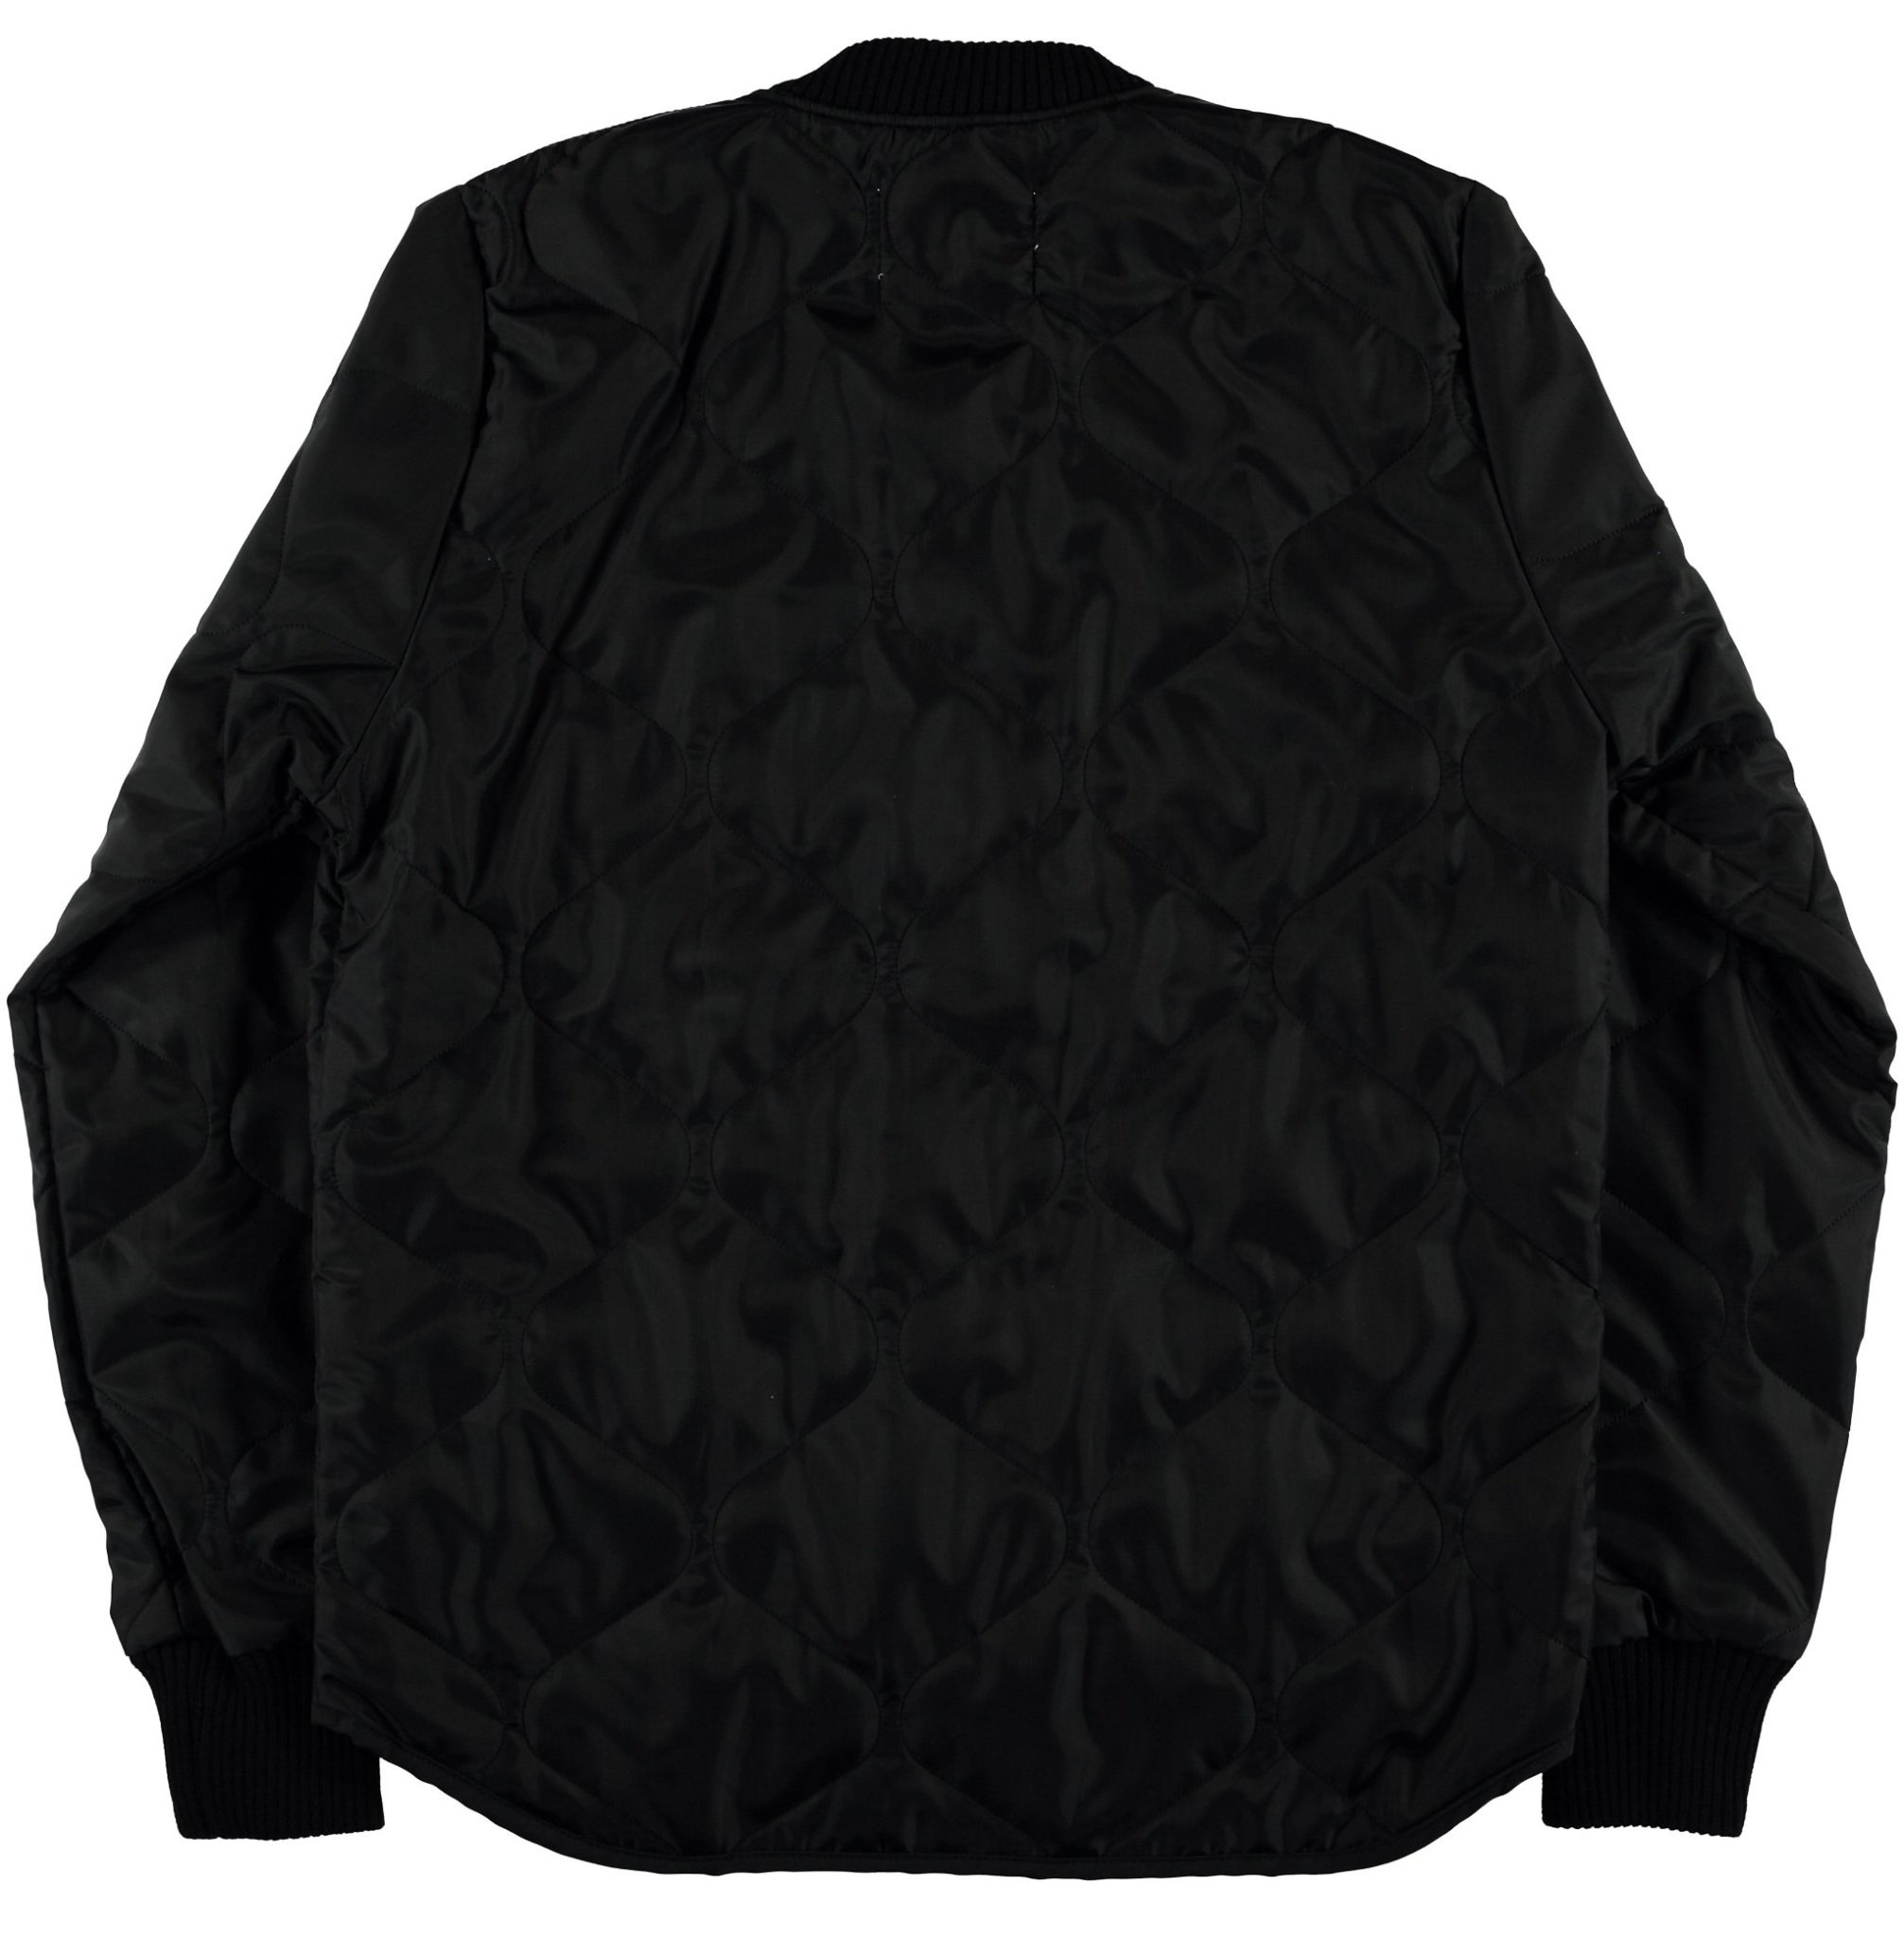 Frostbite Quilted Black Nylon-2